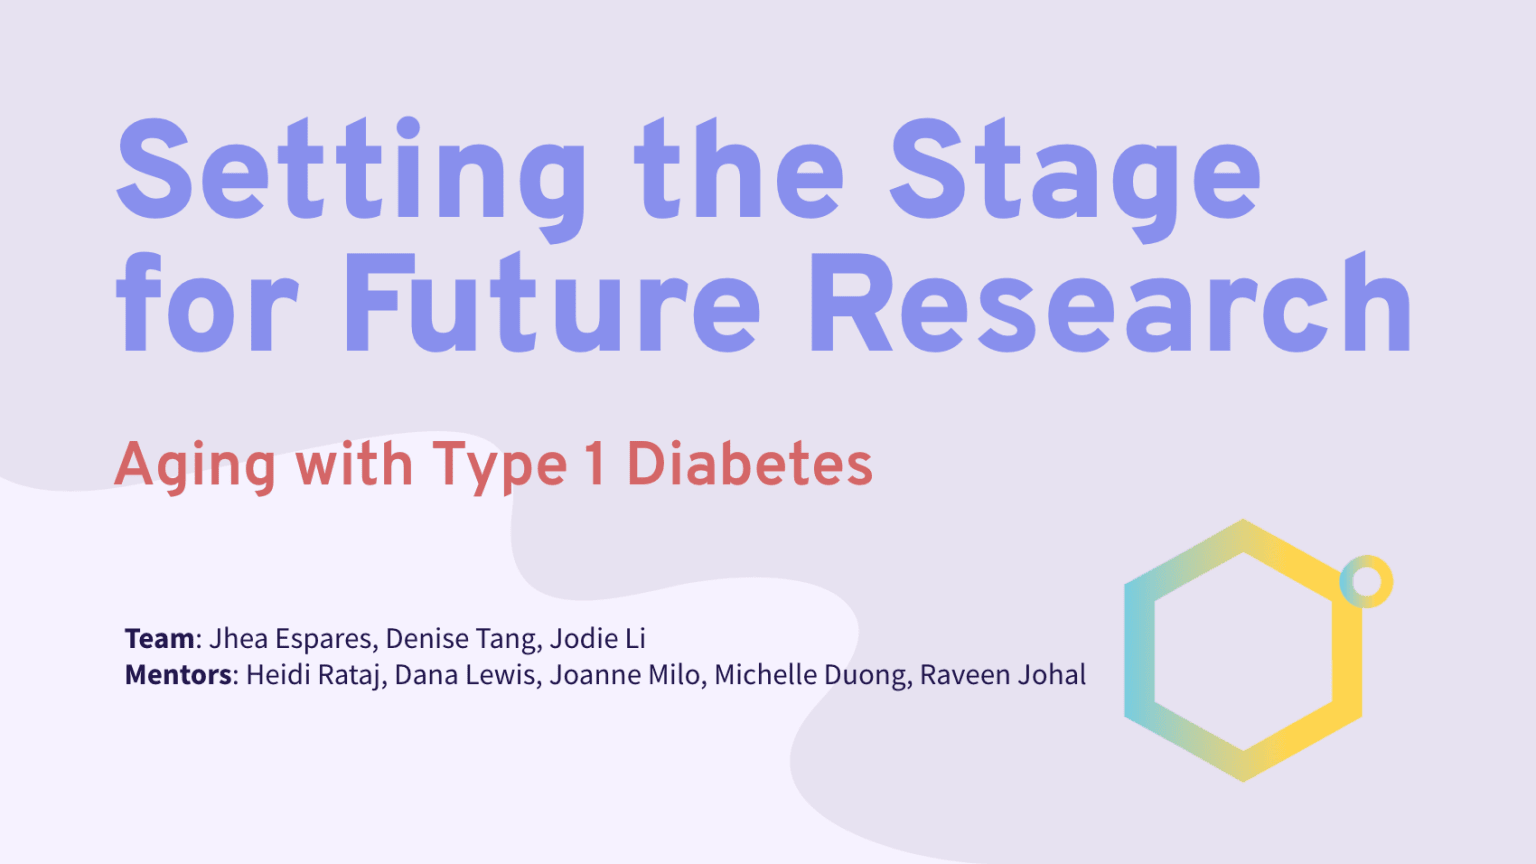 Setting the Stage for Future Research on Type 1 Diabetes & Aging